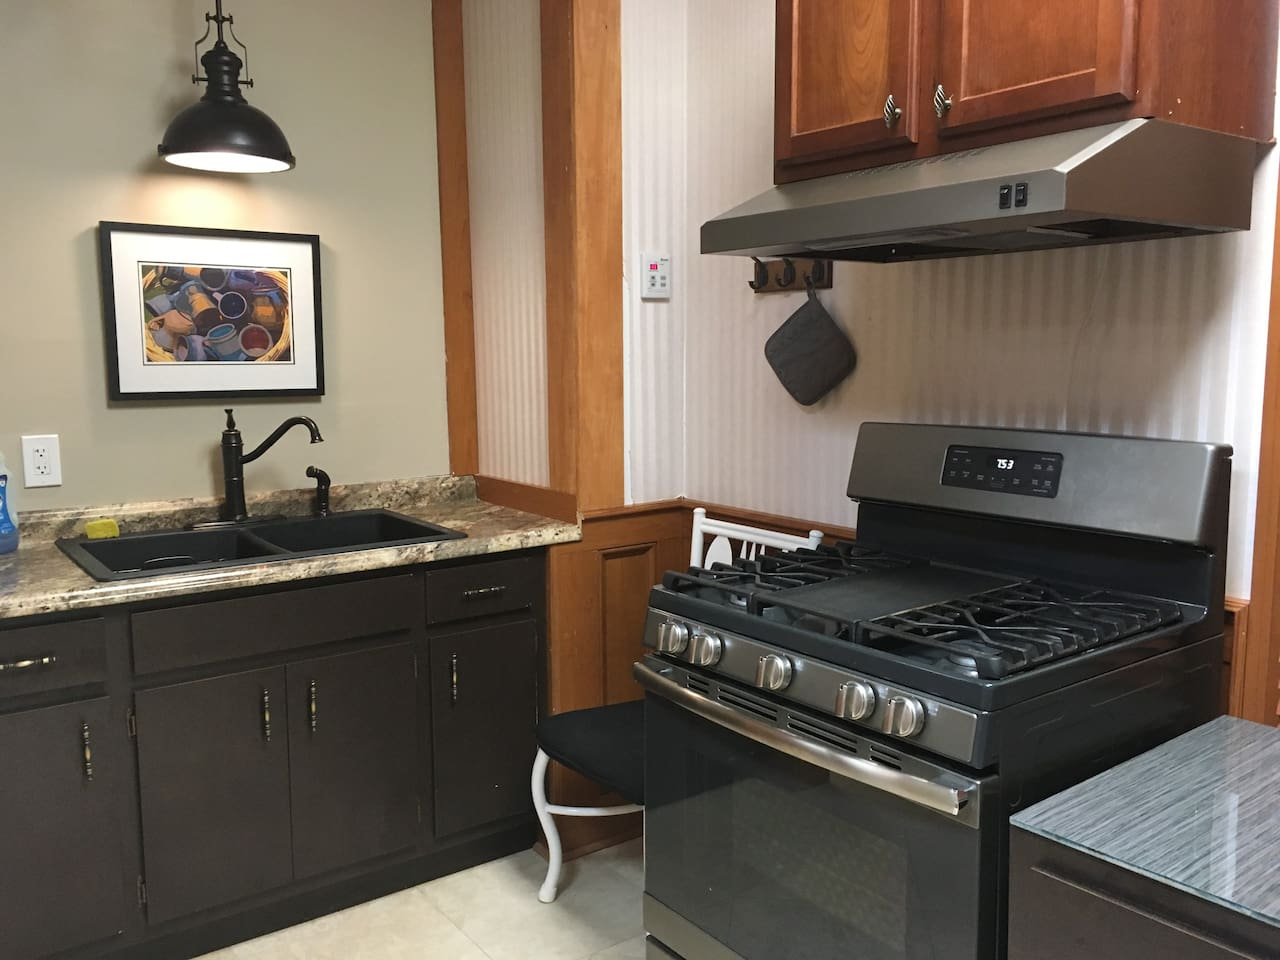 Kitchen has sink, gas stove, fridge, microwave, toaster and coffee pot.  Limited cooking wares and dishes.